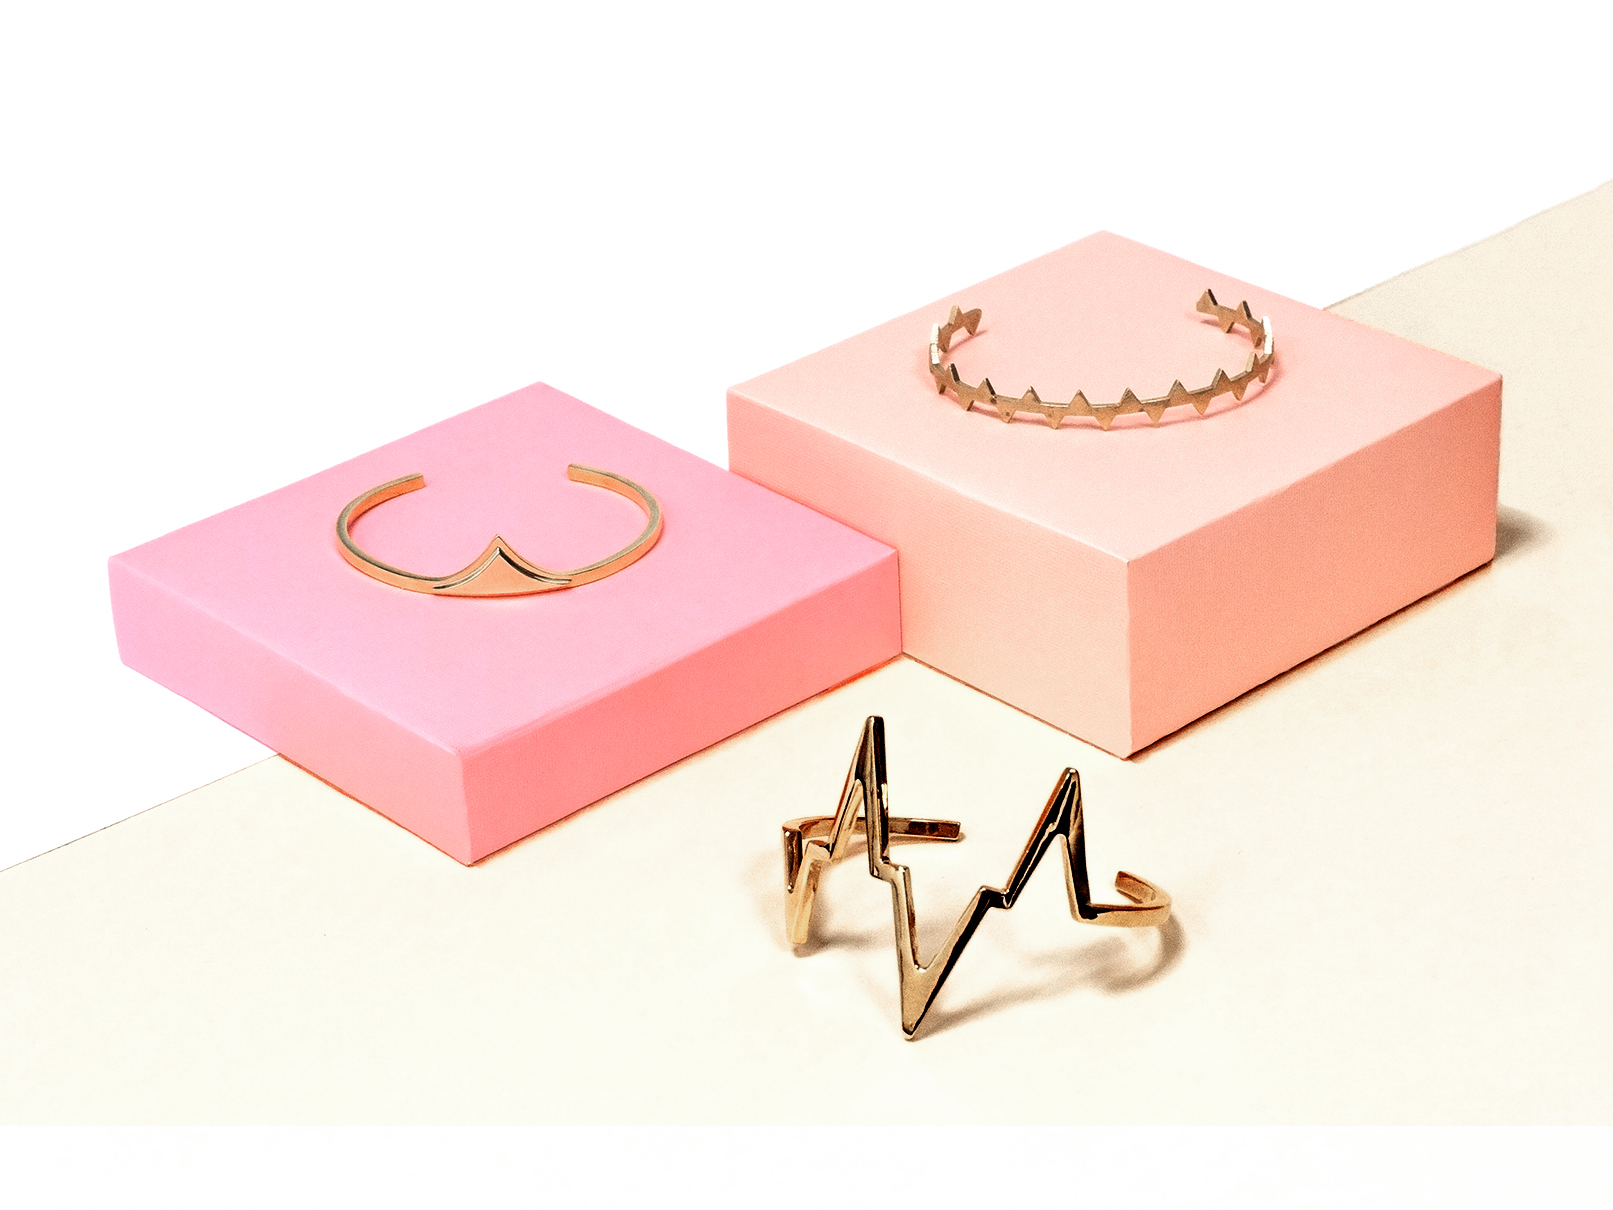 Trove uses 3D printing technology to create customized jewelry